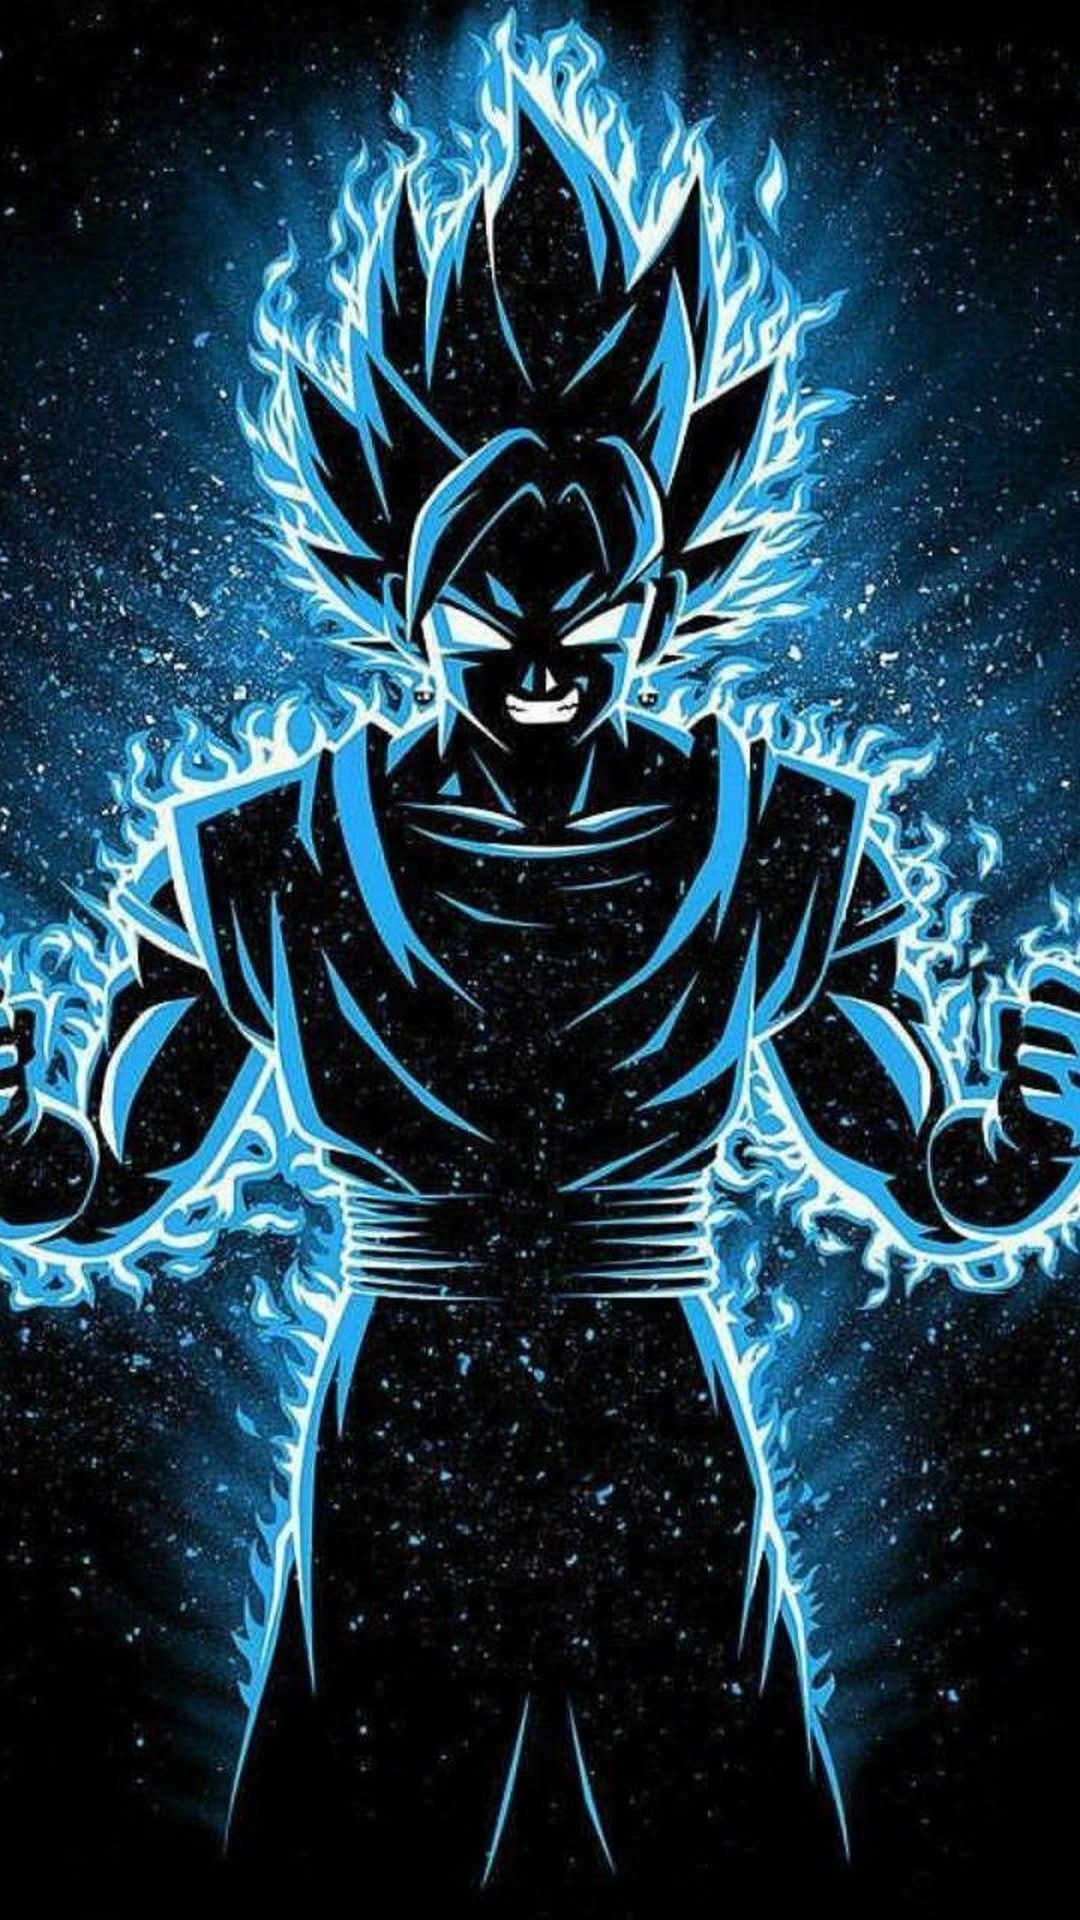 Black Dbz Wallpaper Download in 2020 Dragon ball